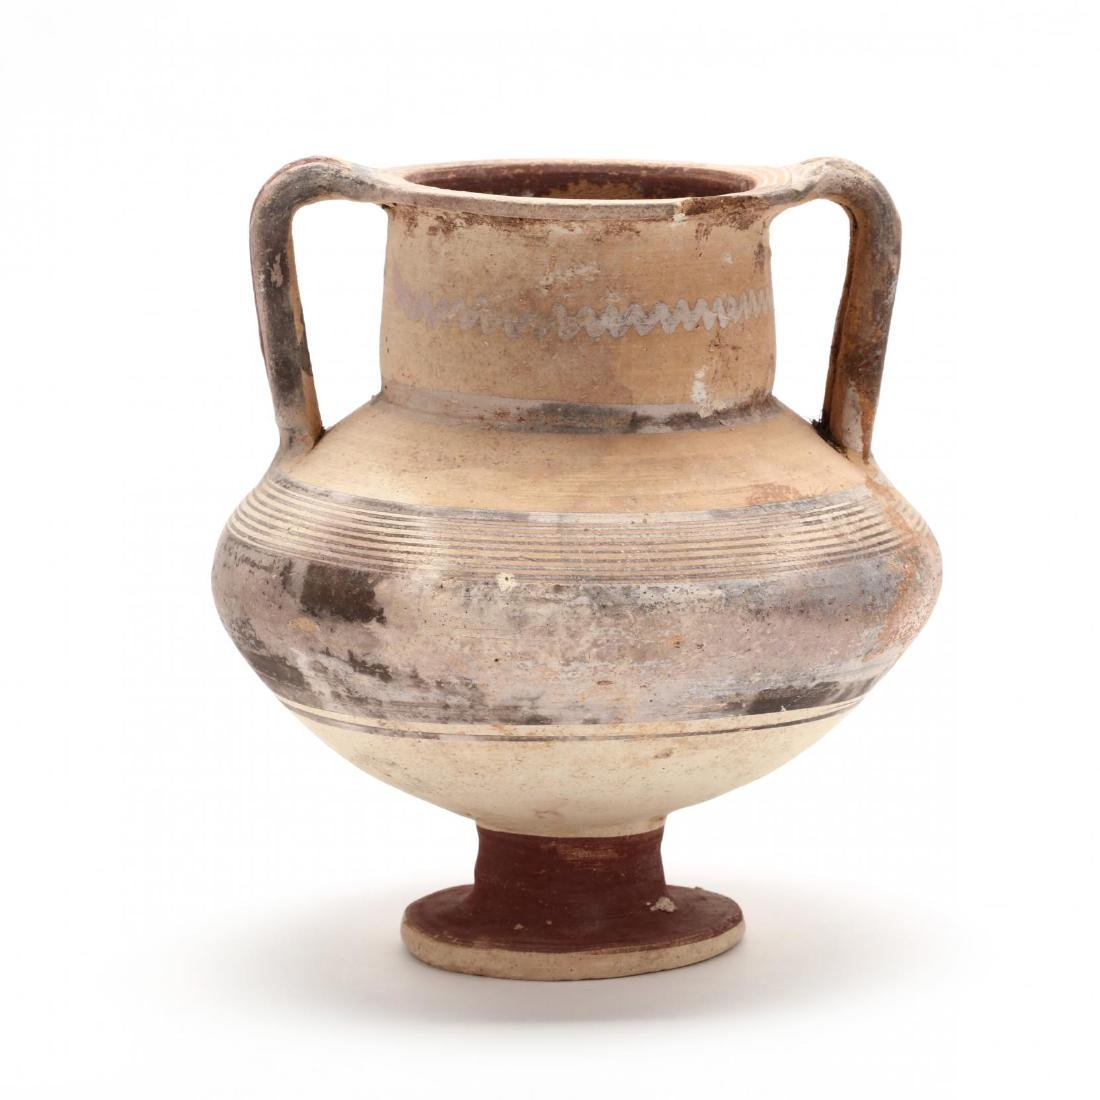 Cypro-Archaic Footed Amphora